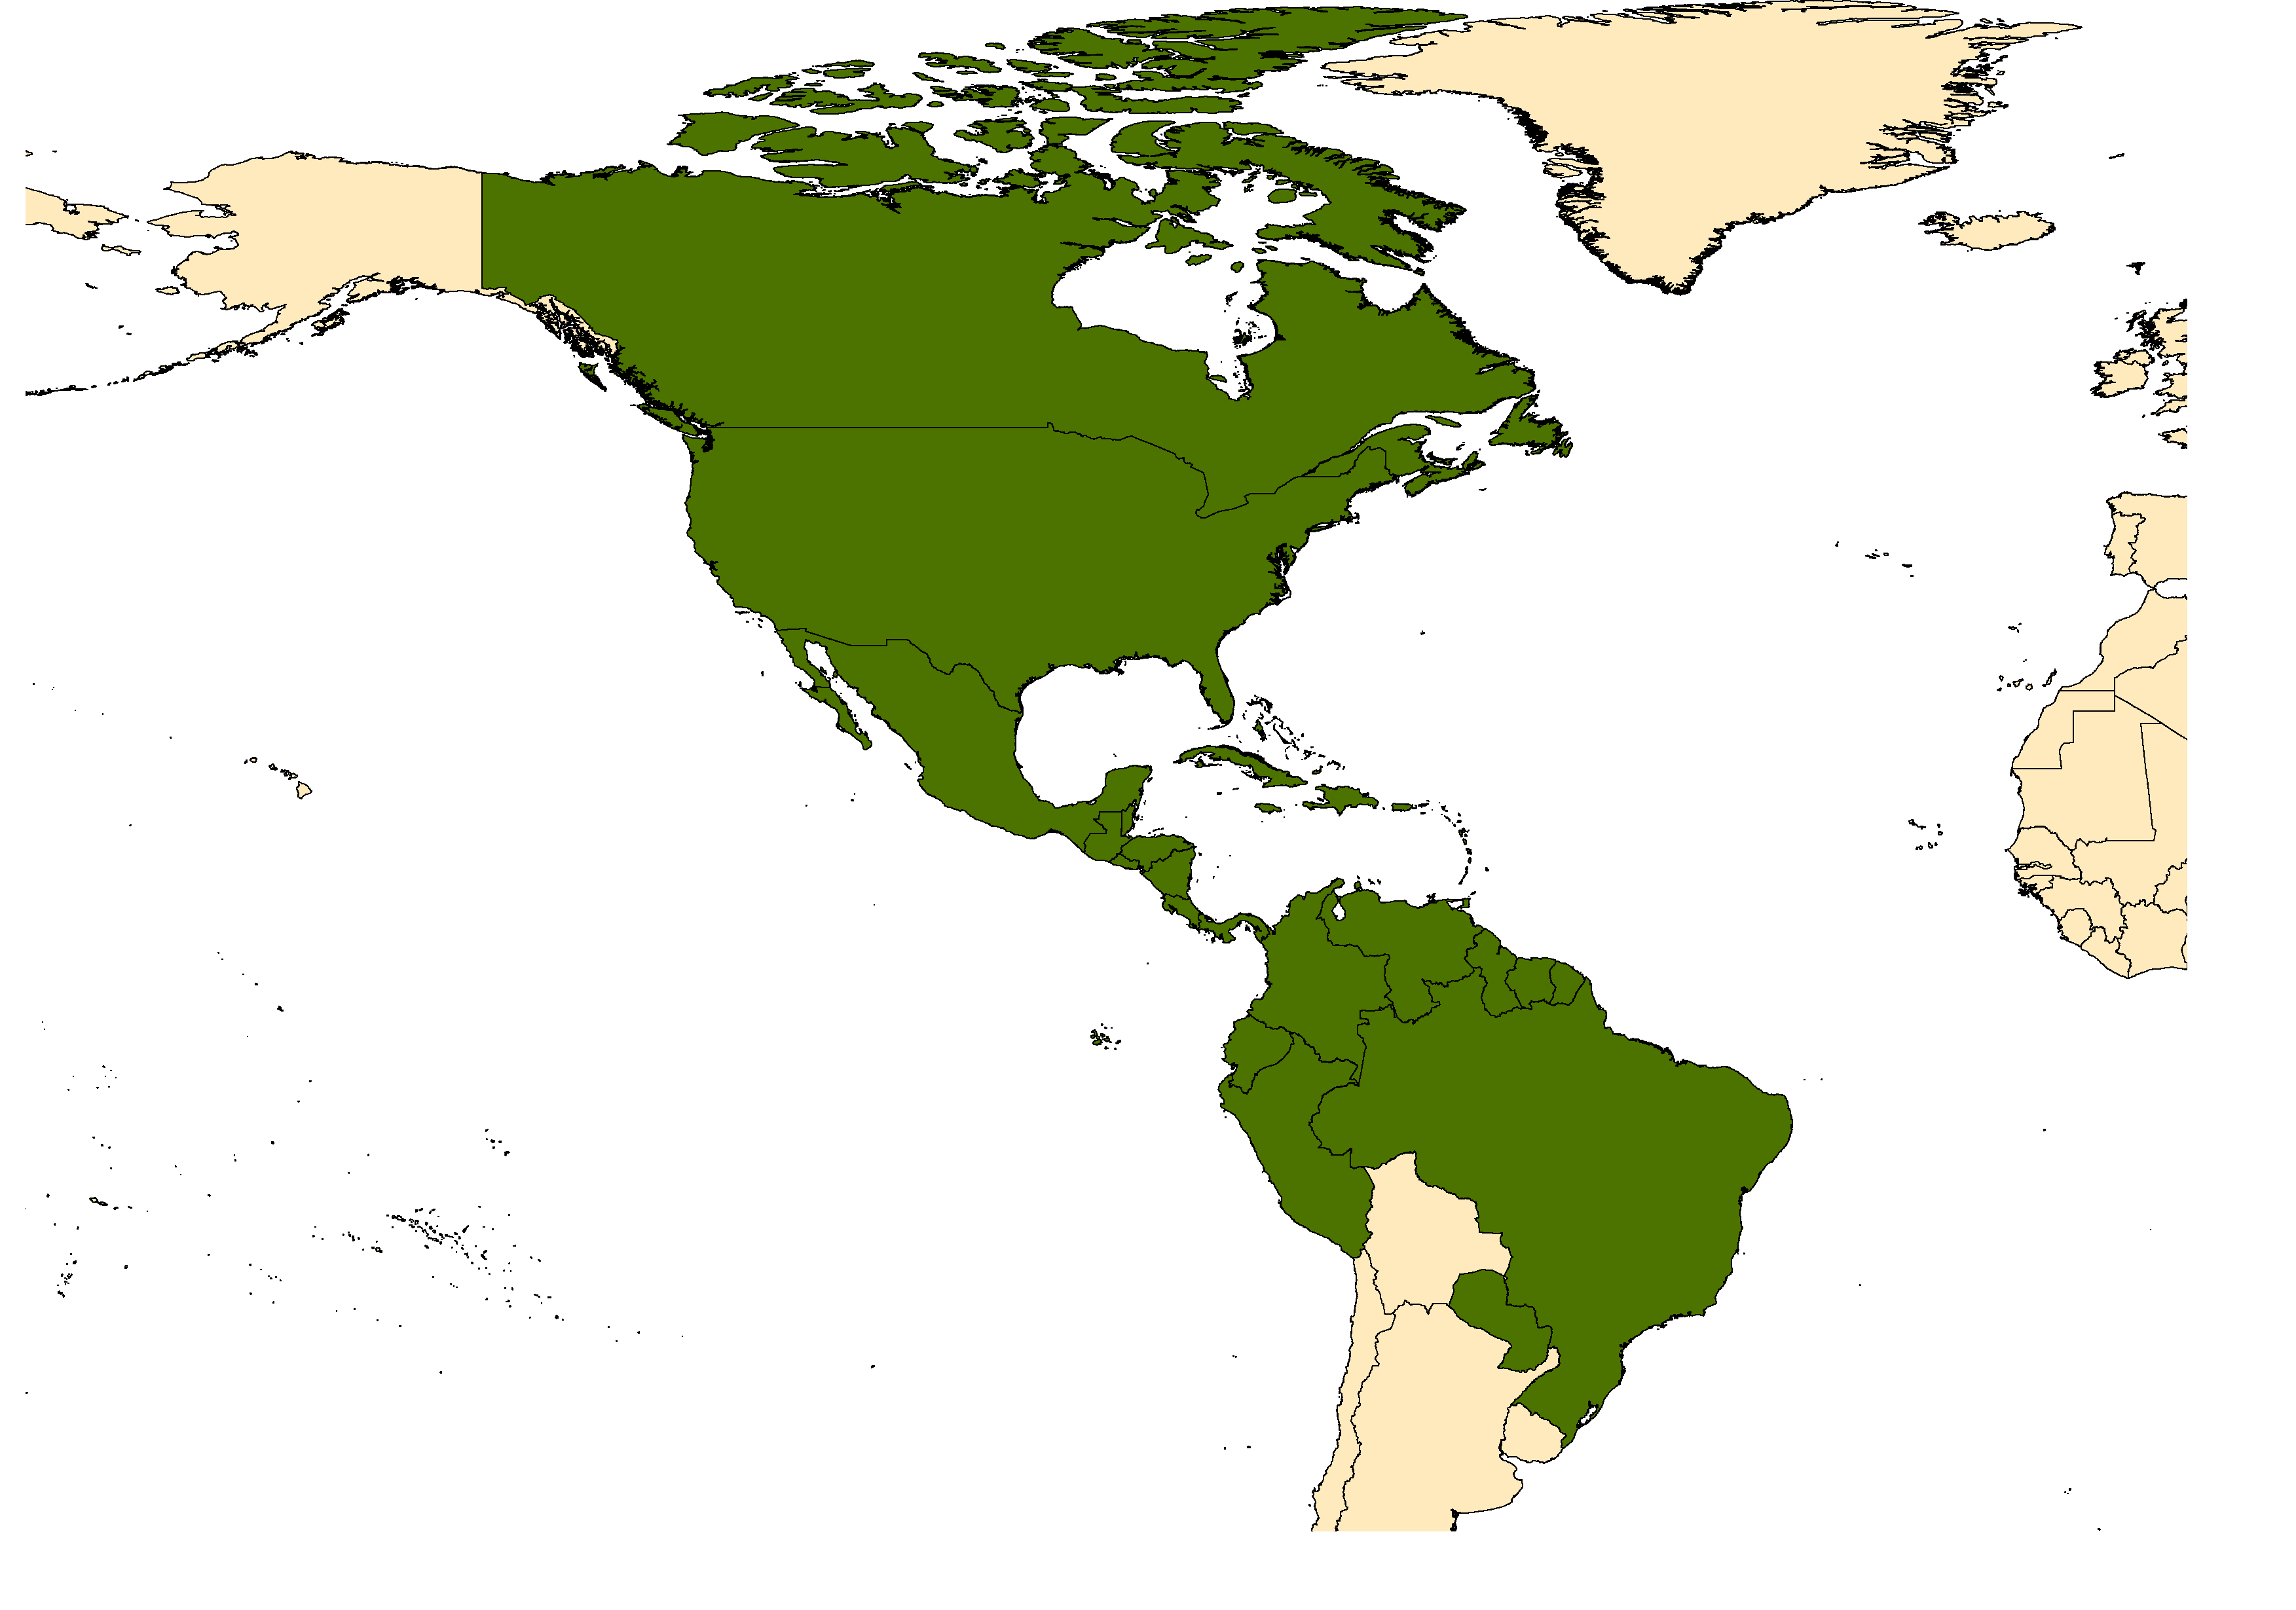 Distribution map for <em>Culex erraticus</em> (Dyar & Knab, 1906)